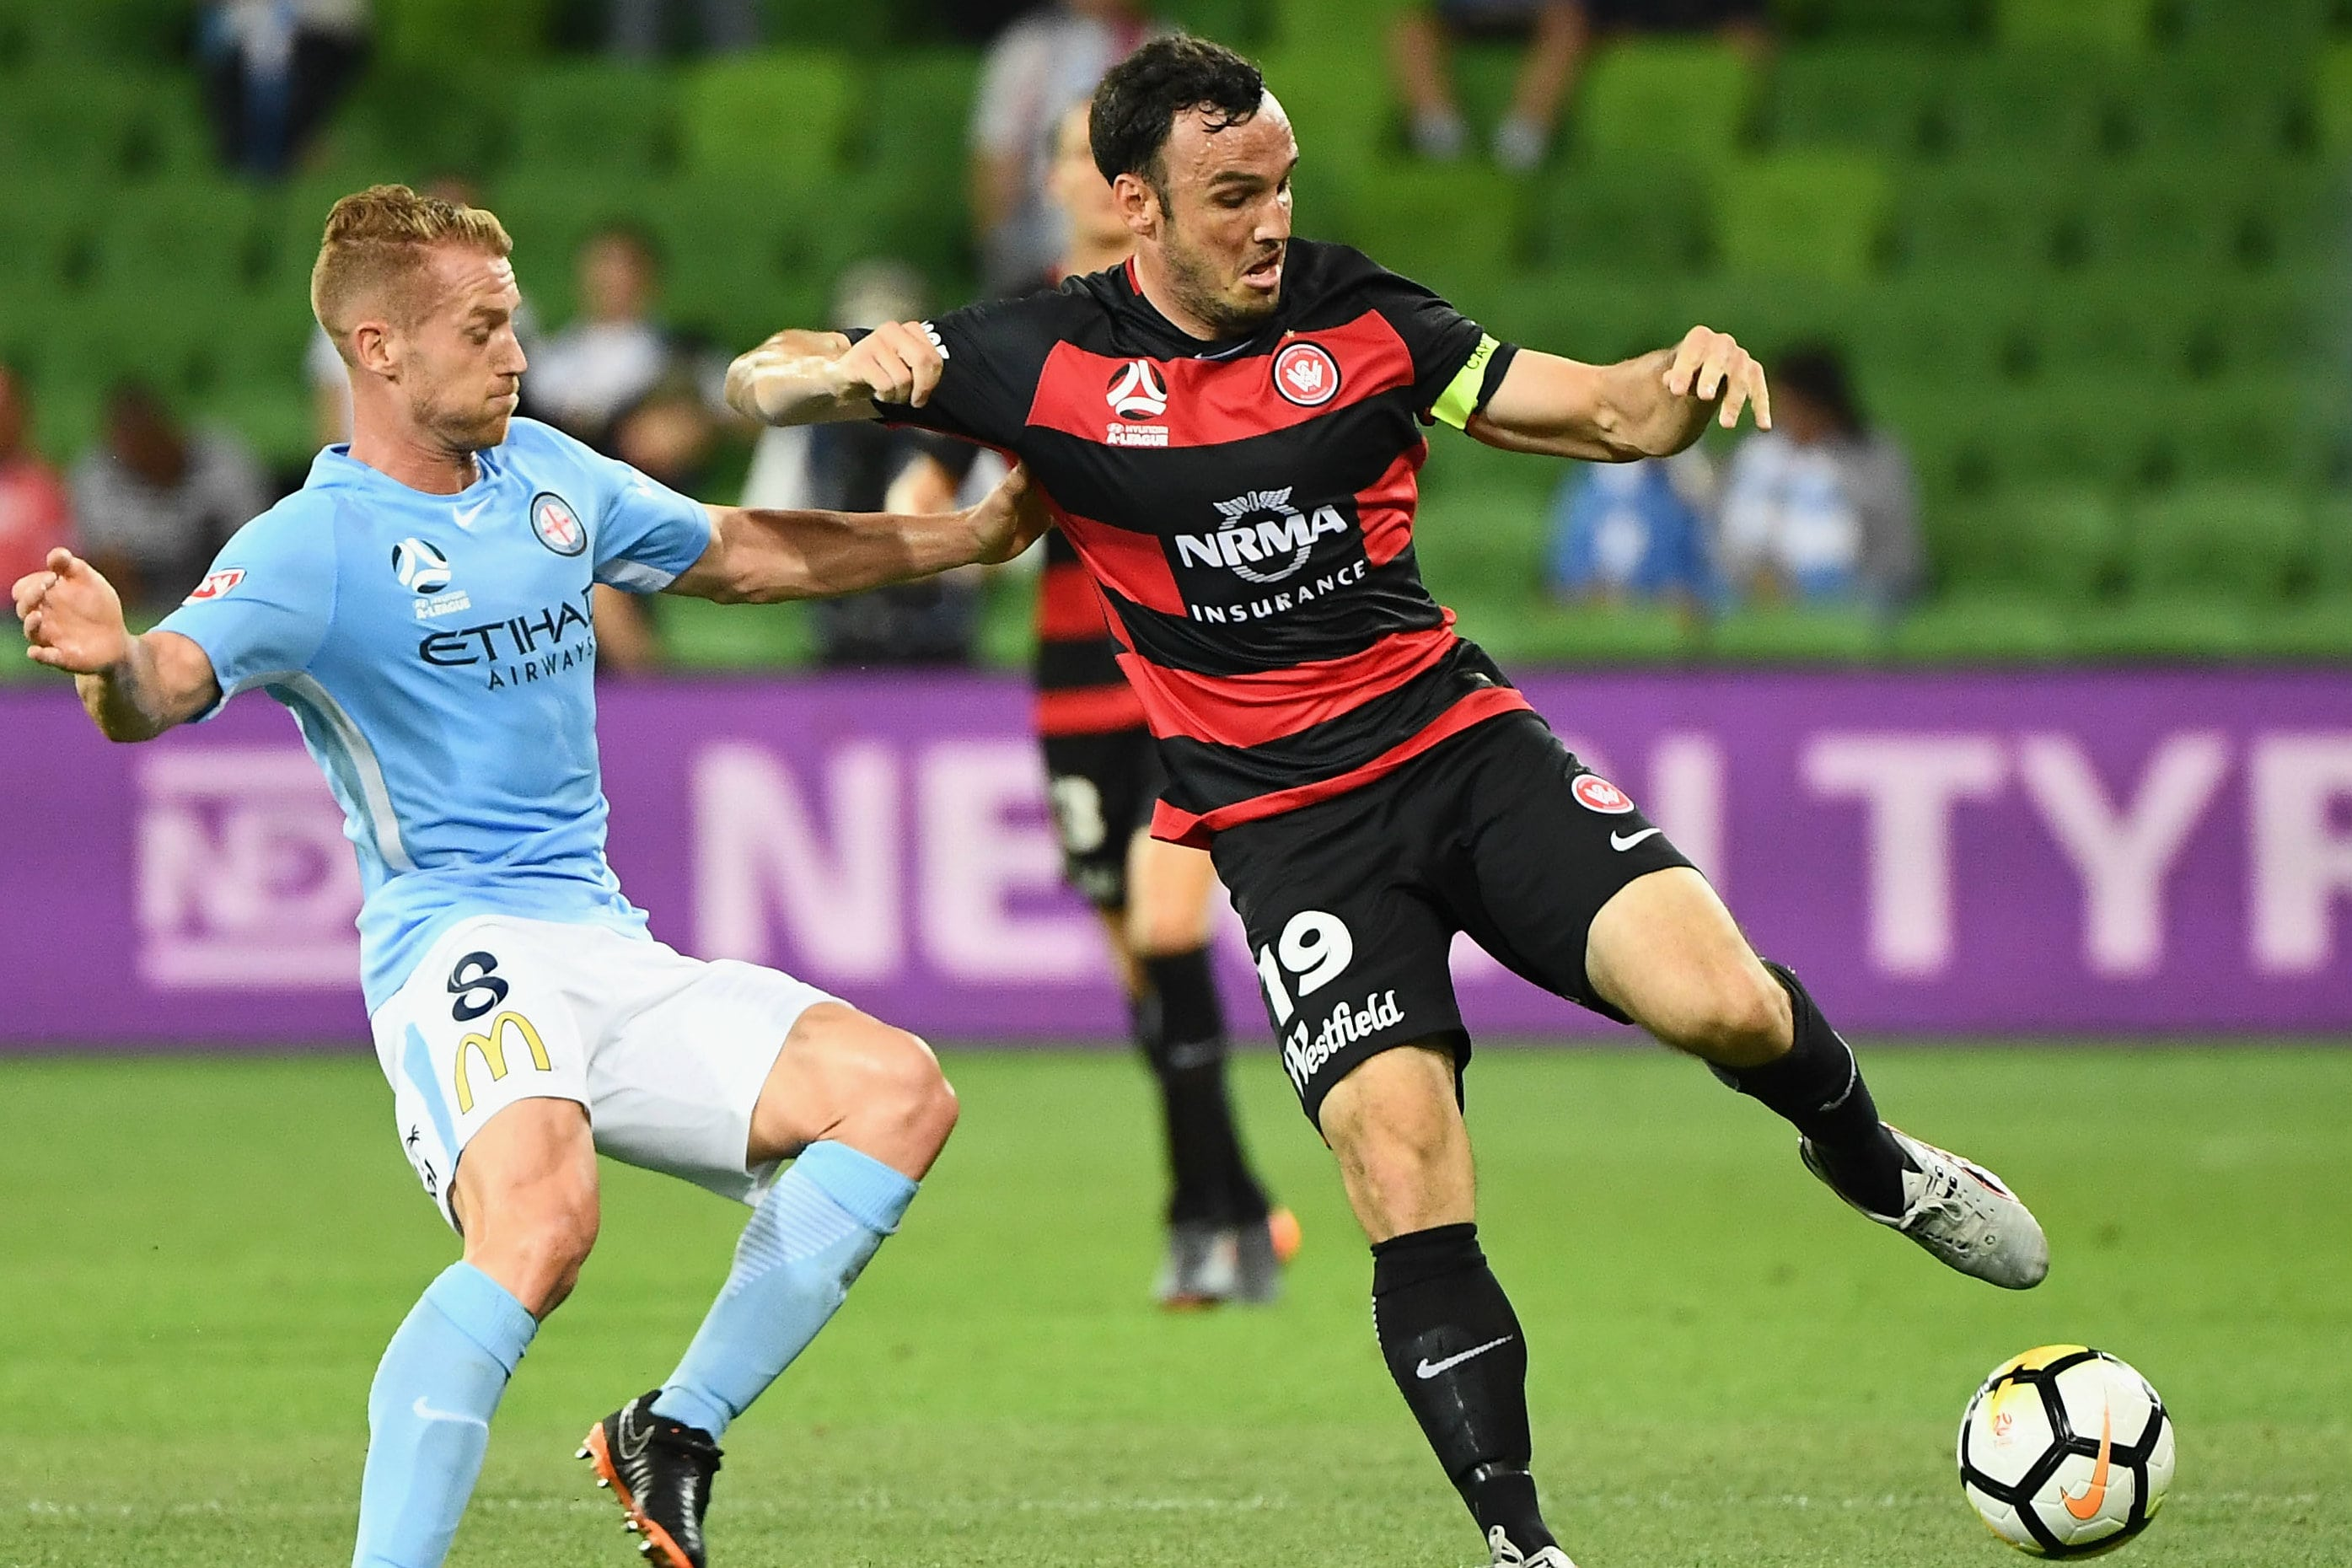 Melbourne Victory - WS Wanderers Soccer Prediction